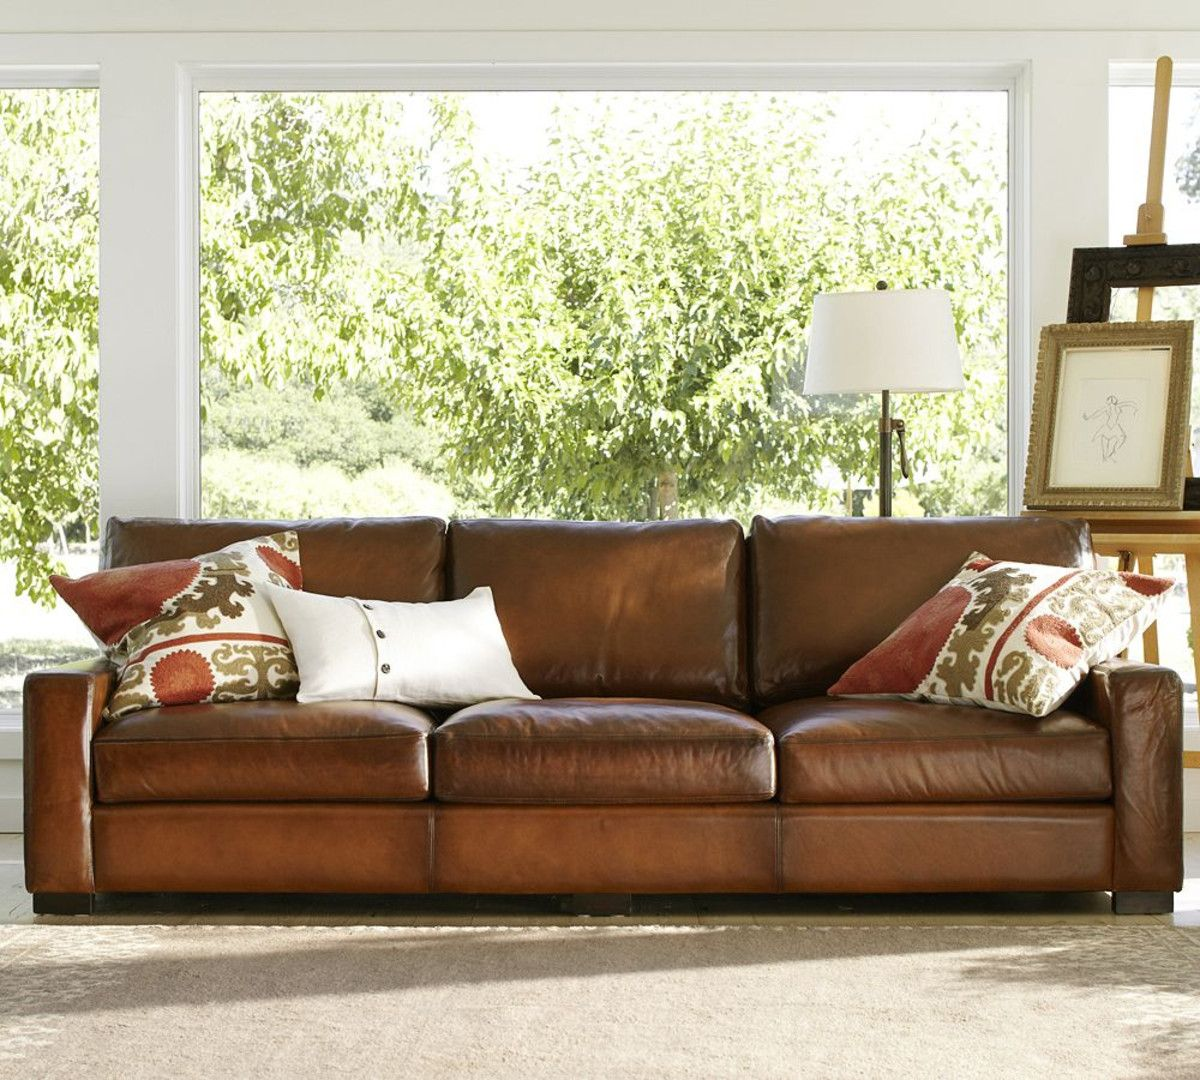 Phenomenal Turner Leather Sofa New House Stuff Pottery Barn Sofa Caraccident5 Cool Chair Designs And Ideas Caraccident5Info